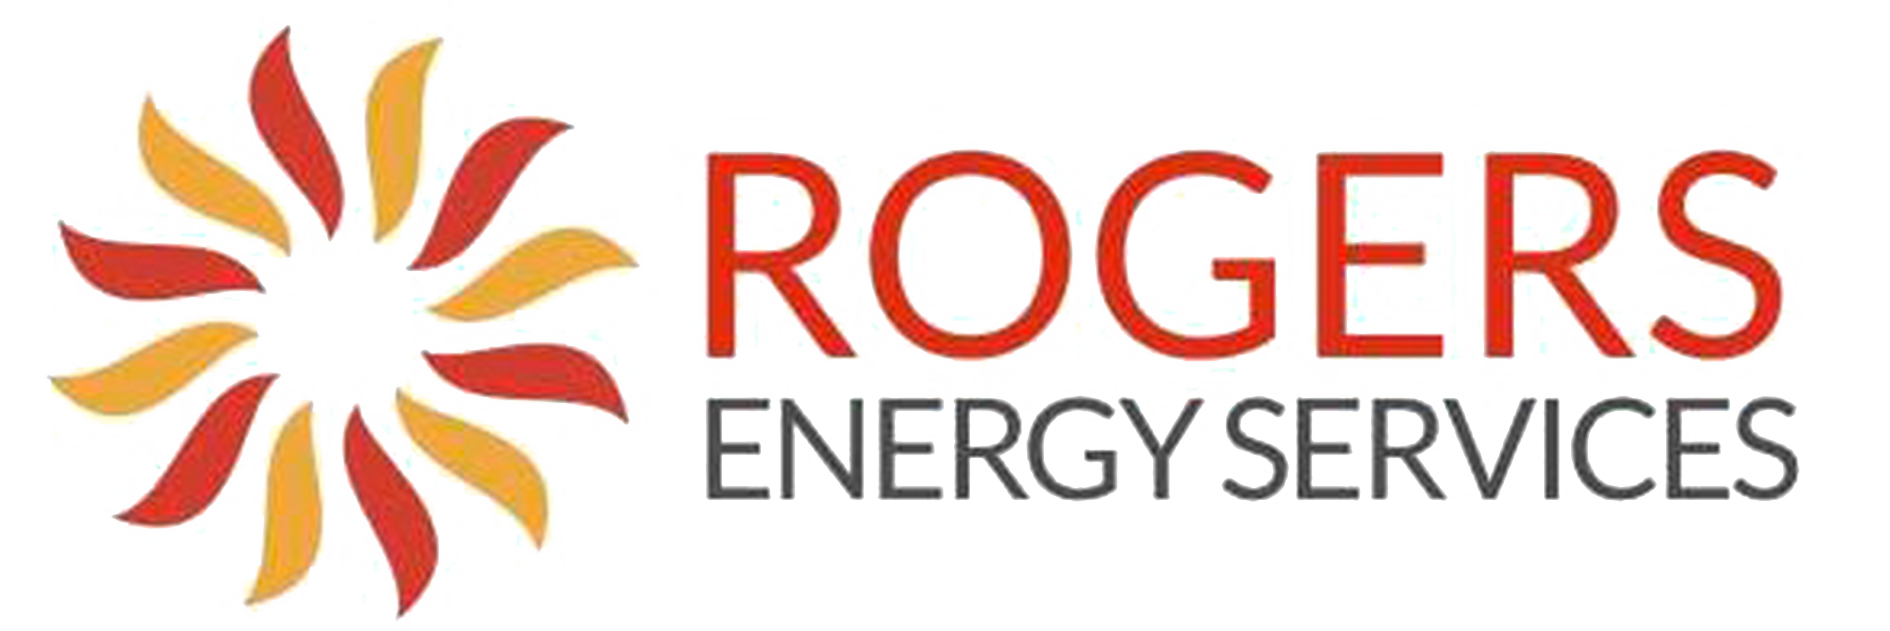 rogers-energy-services-logo